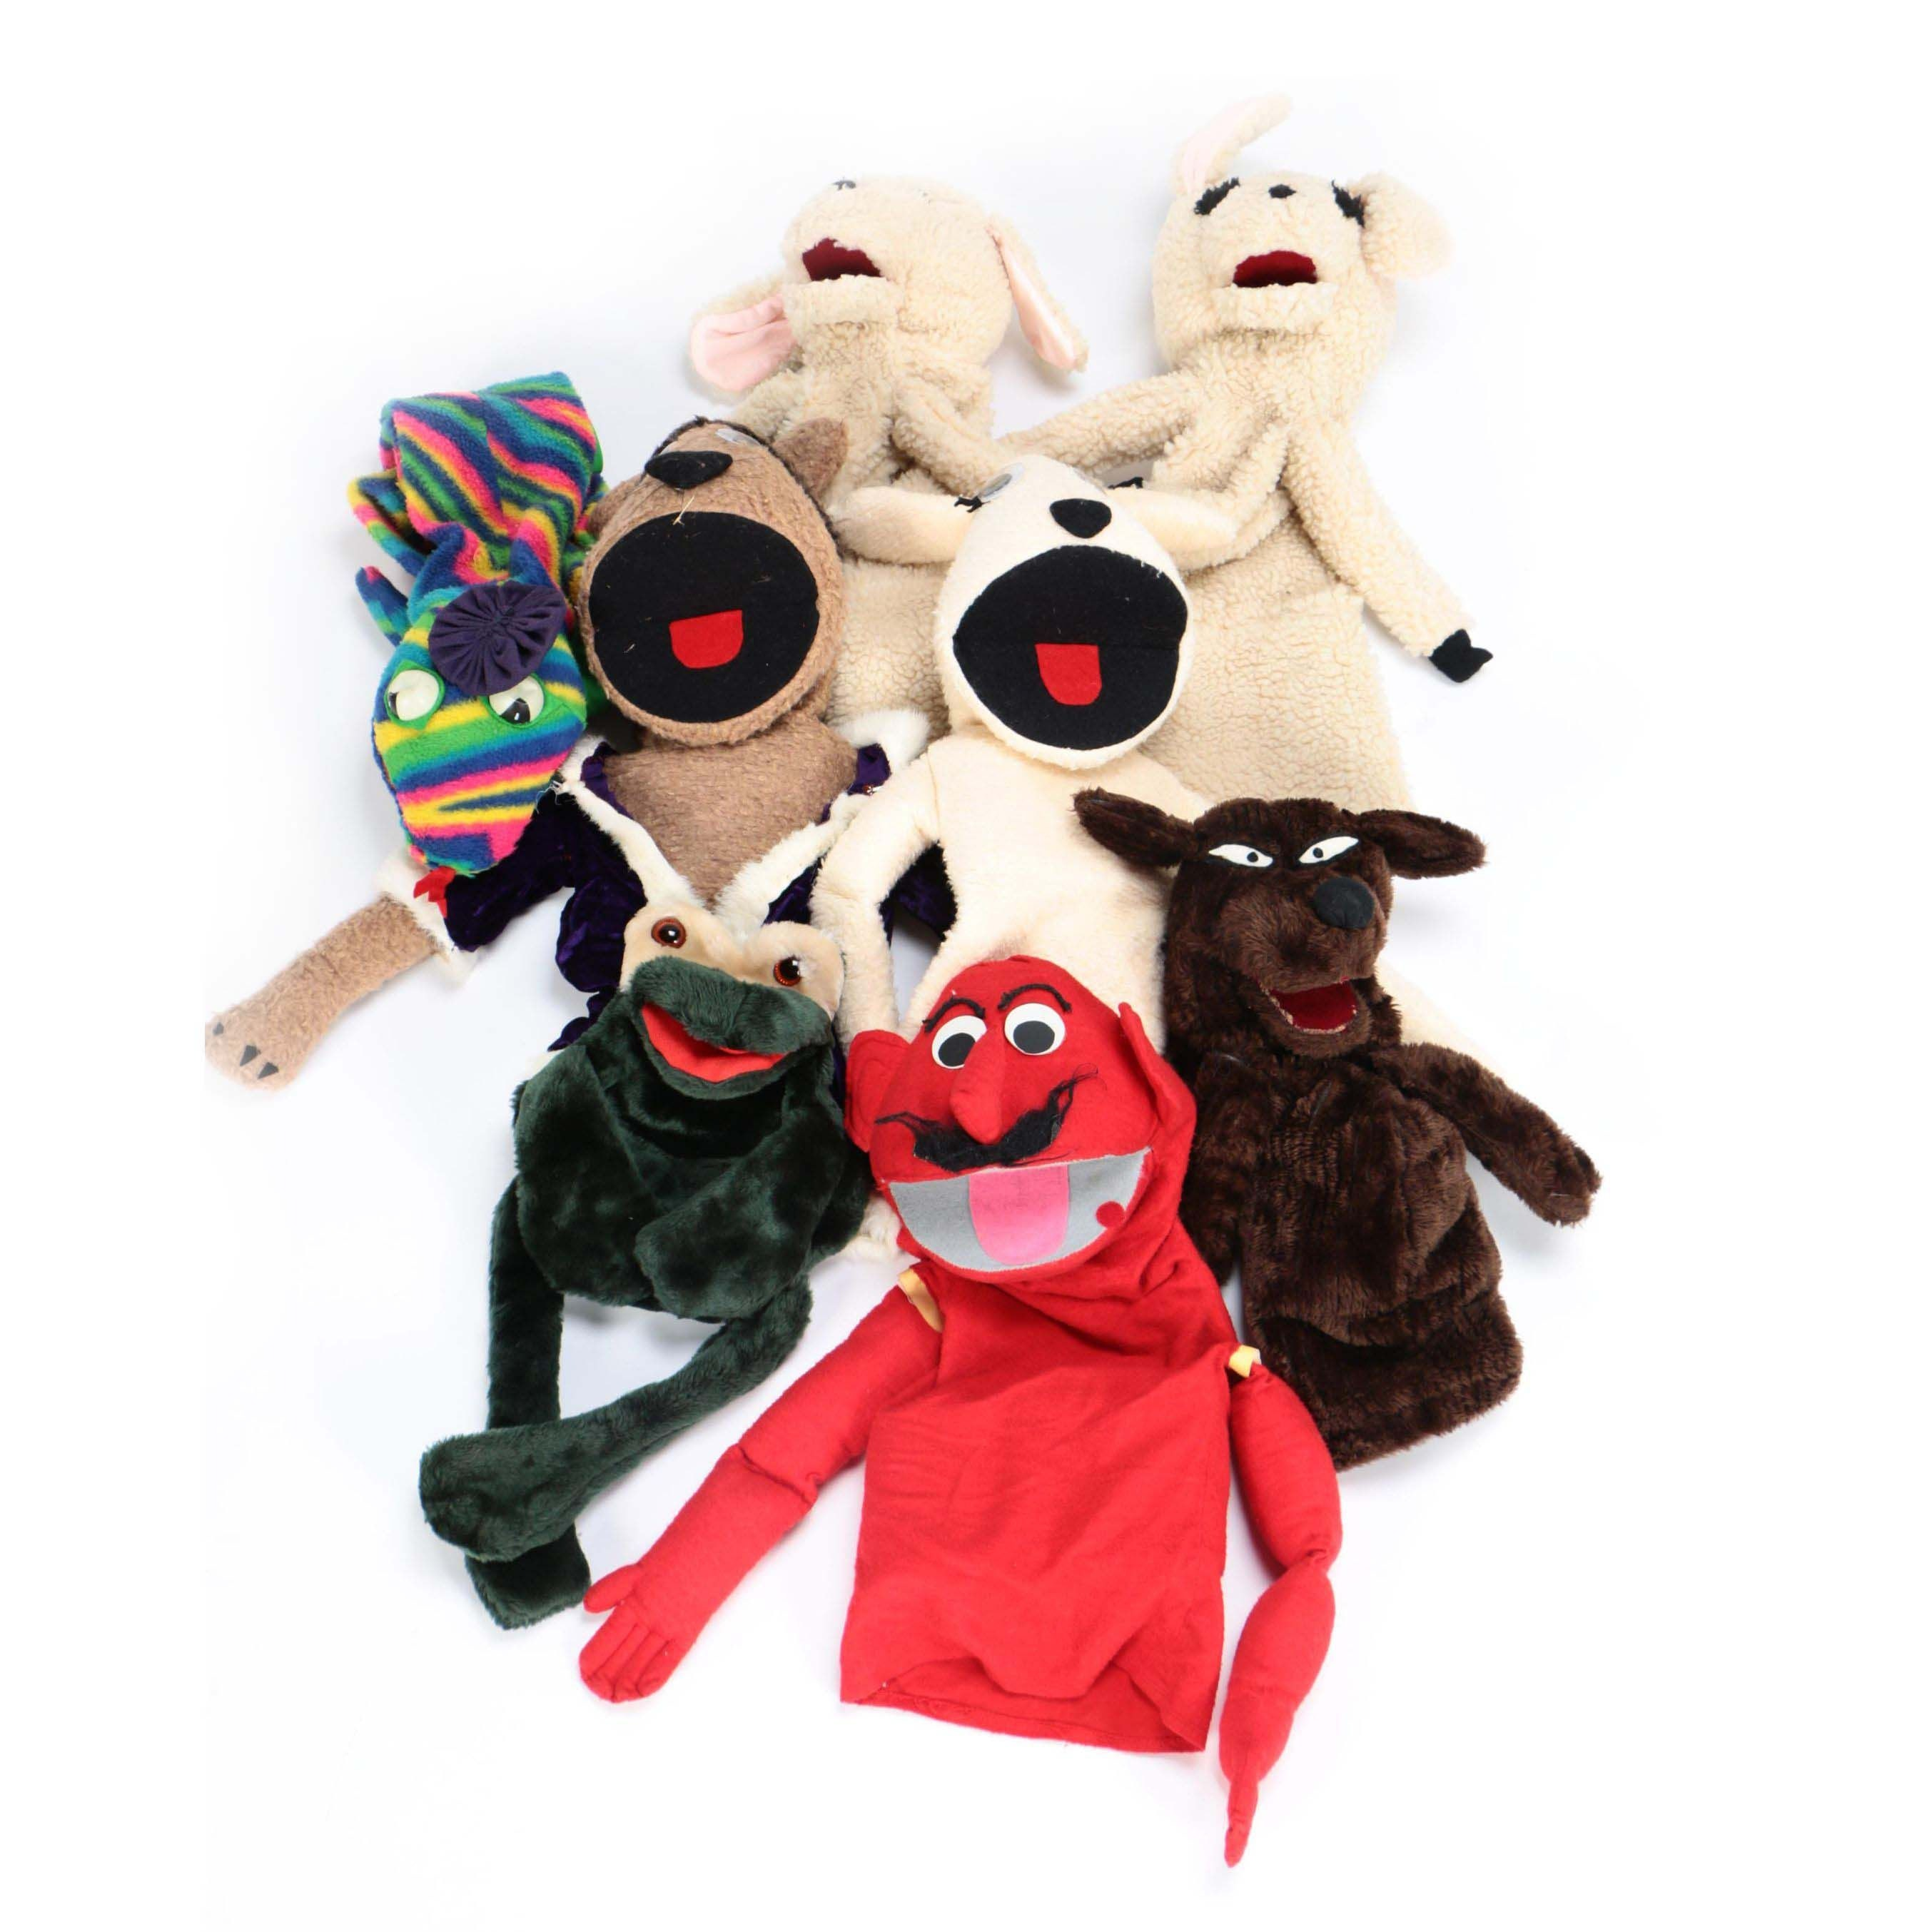 Vintage Animal Hand Puppets